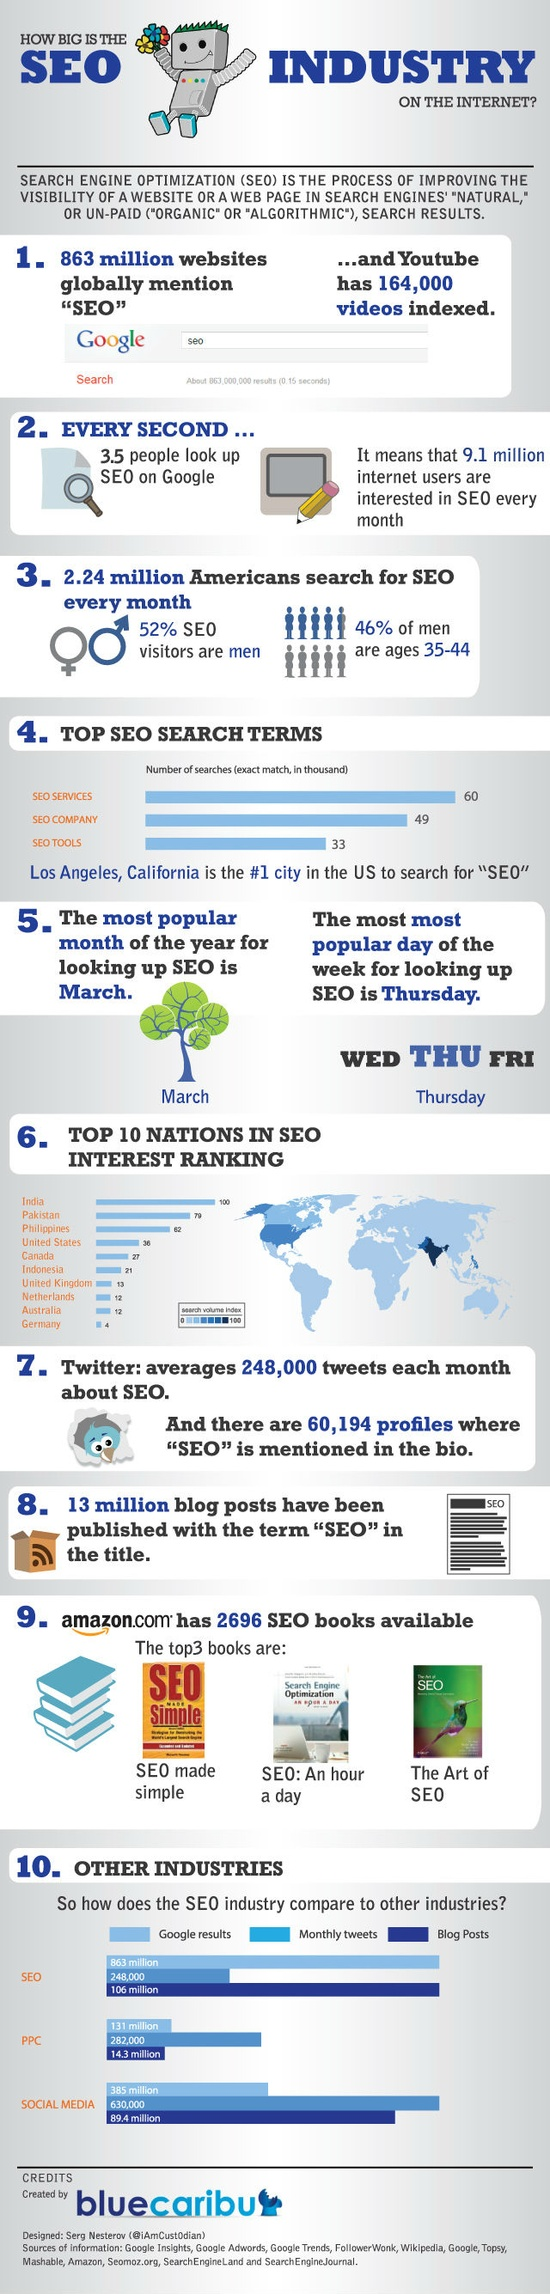 Boost the Business: Brand the Name-Hire Offshore SEO Expert Today